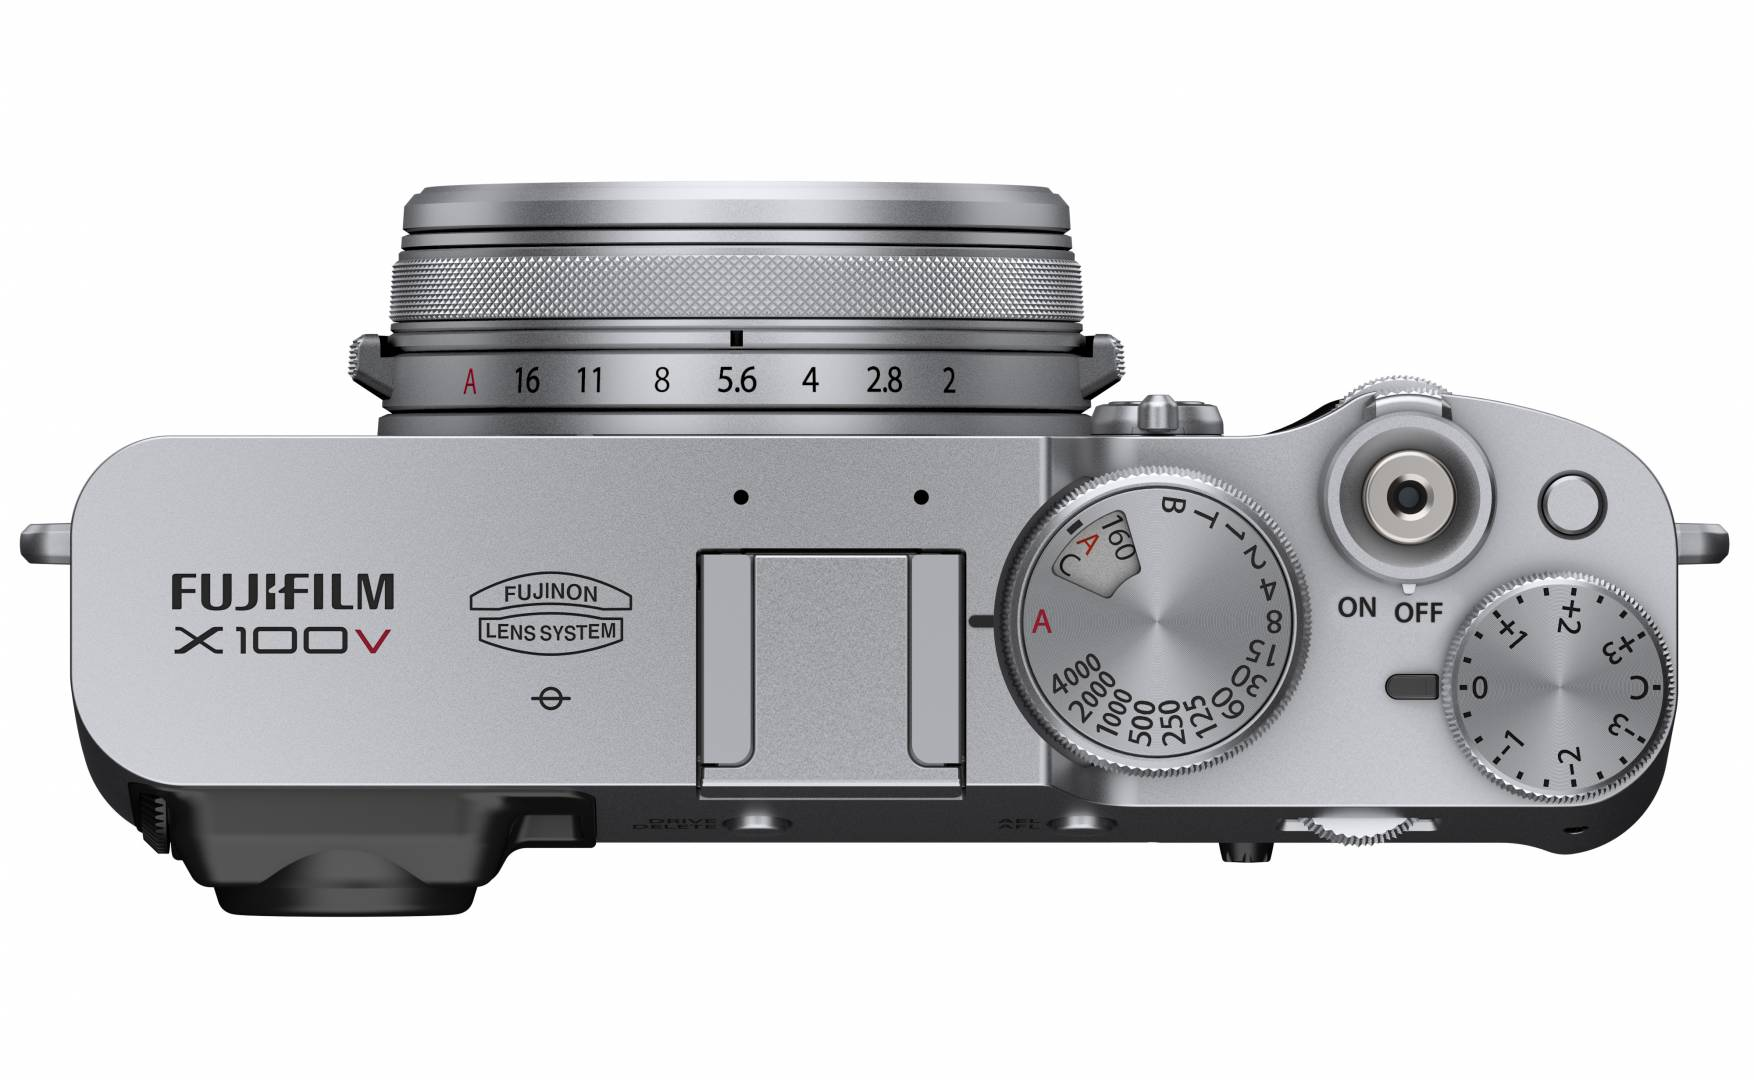 Direct, WYSIWYG controls for aperture, speed, ISO and compensation are a model for others to follow. Even Leica has moved more to digital settings and Fuji's dedication to traditional methods has earned converts.